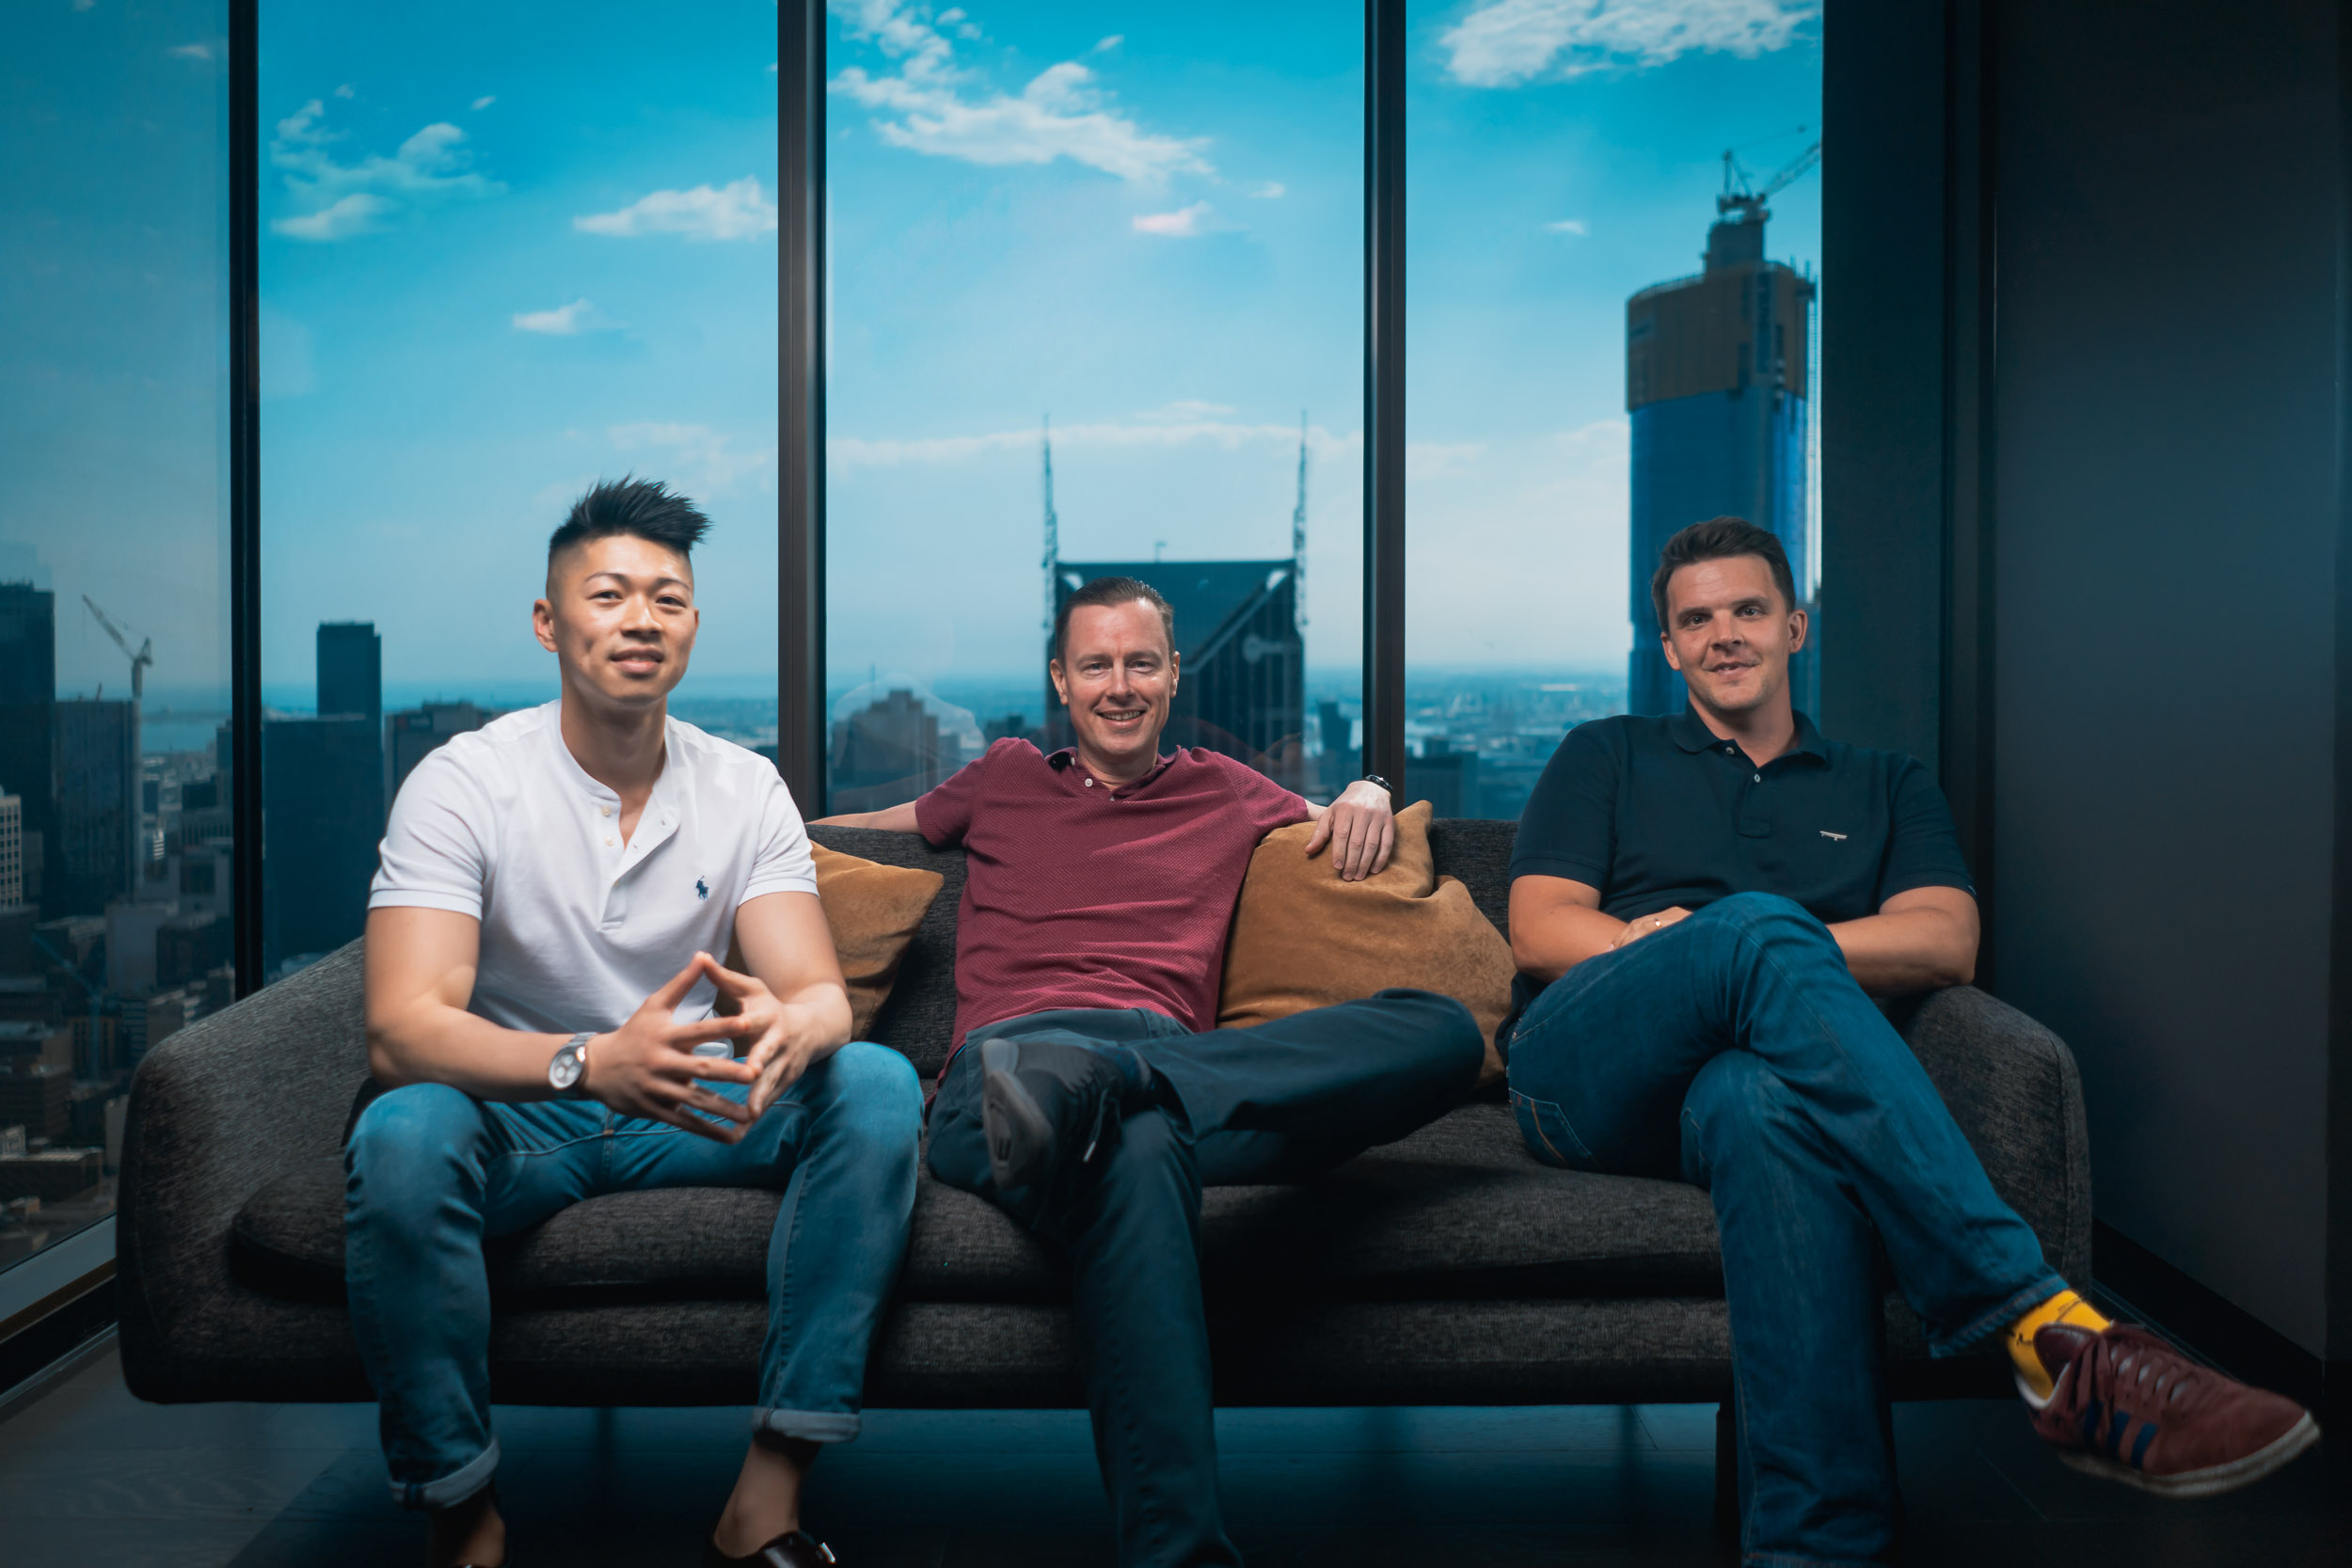 Eric Chin (above, left; photo credit: Lawrence Loque) has consulted to the legal industry for nearly a decade, first at renowned consulting firm Beaton, and now with his new firm, Alpha Creates.